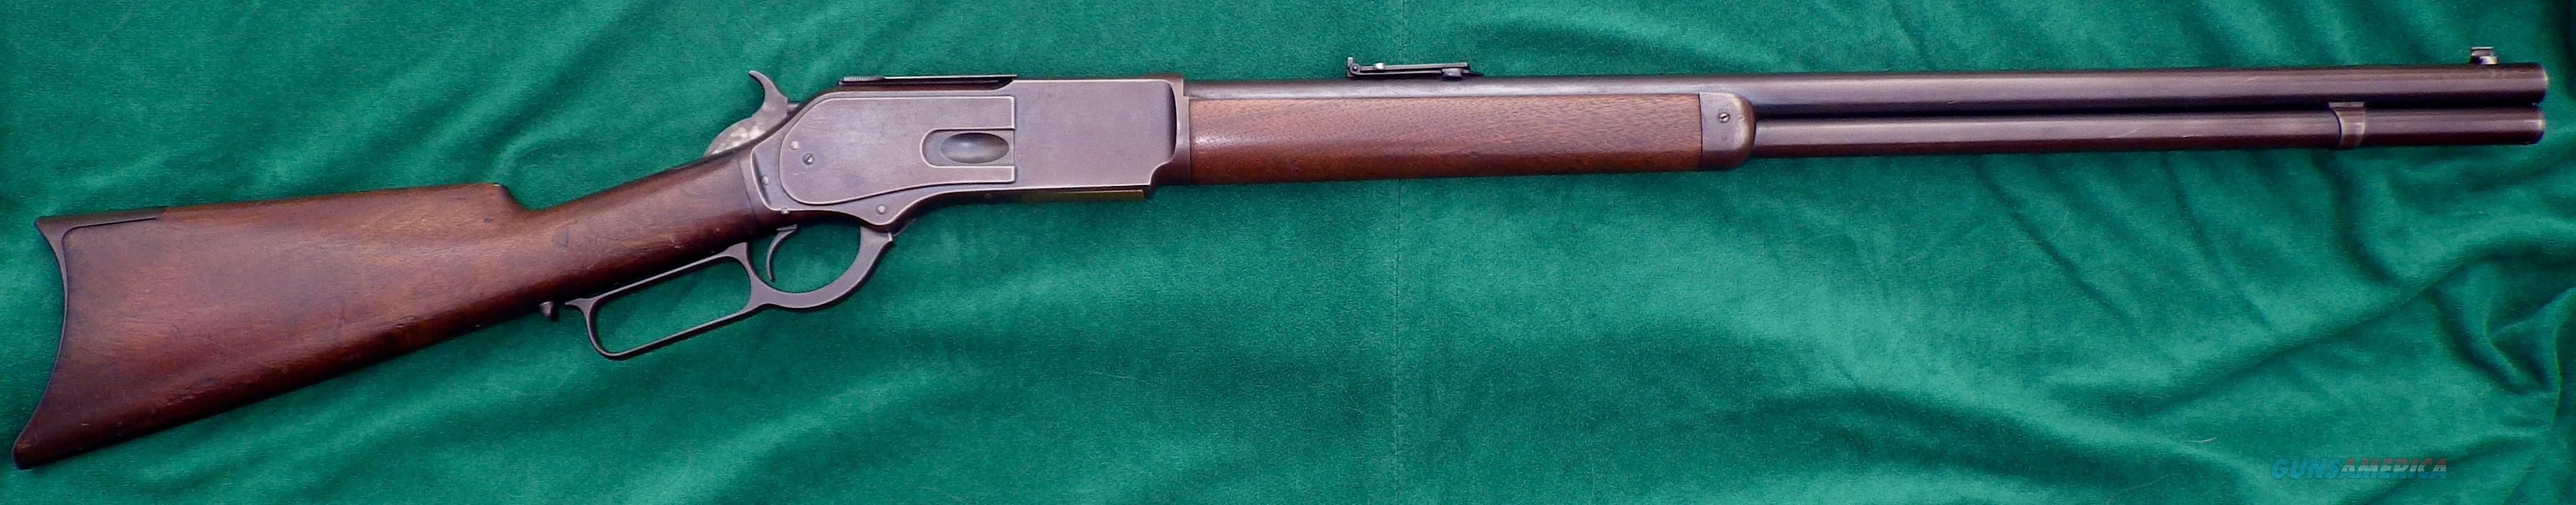 Winchester 1876 .45-60, original & clean, benefits Boone & Crockett Club  Guns > Rifles > Winchester Rifles - Pre-1899 Lever